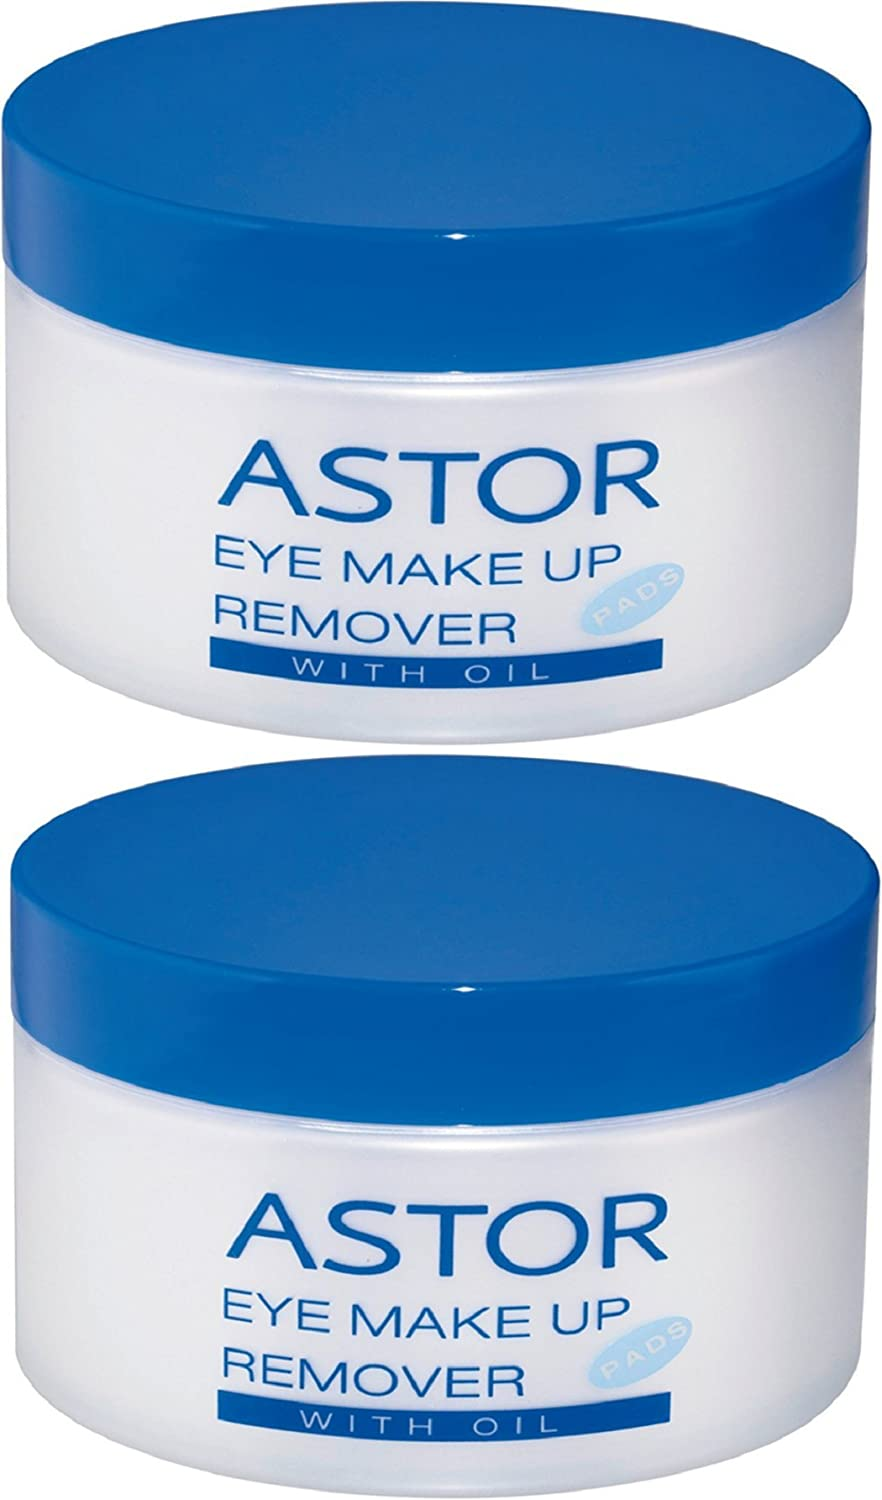 Astor Eye Make up Remover Pads with Oil, 2er Pack (2 x 50 Stück) 2er Pack (2 x 50 Stück) 23000047000